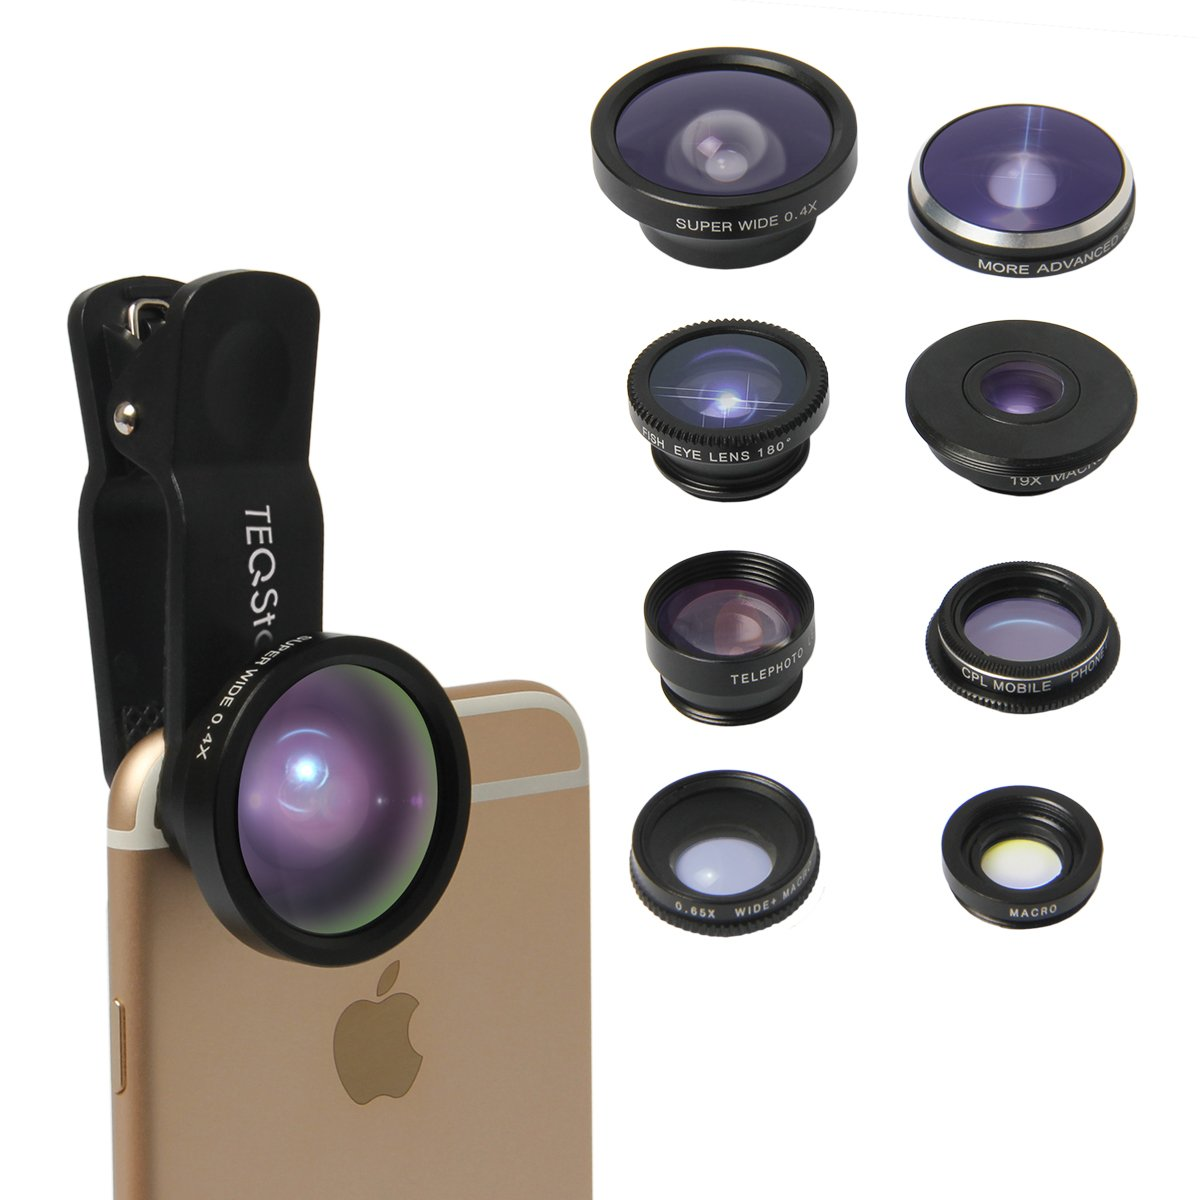 TEQSTONE 8-in-1 Clip-On Cell Phone Camera Lens Kit, 1 x 0.65X Macro& Wide Lens+ Fisheye Lens 180°+ Telephoto Lens 2X+ CPL Lens + Super Fisheye Lens 235°& 19X Macro Lens+ 0.4X Super Wide Angle Lens